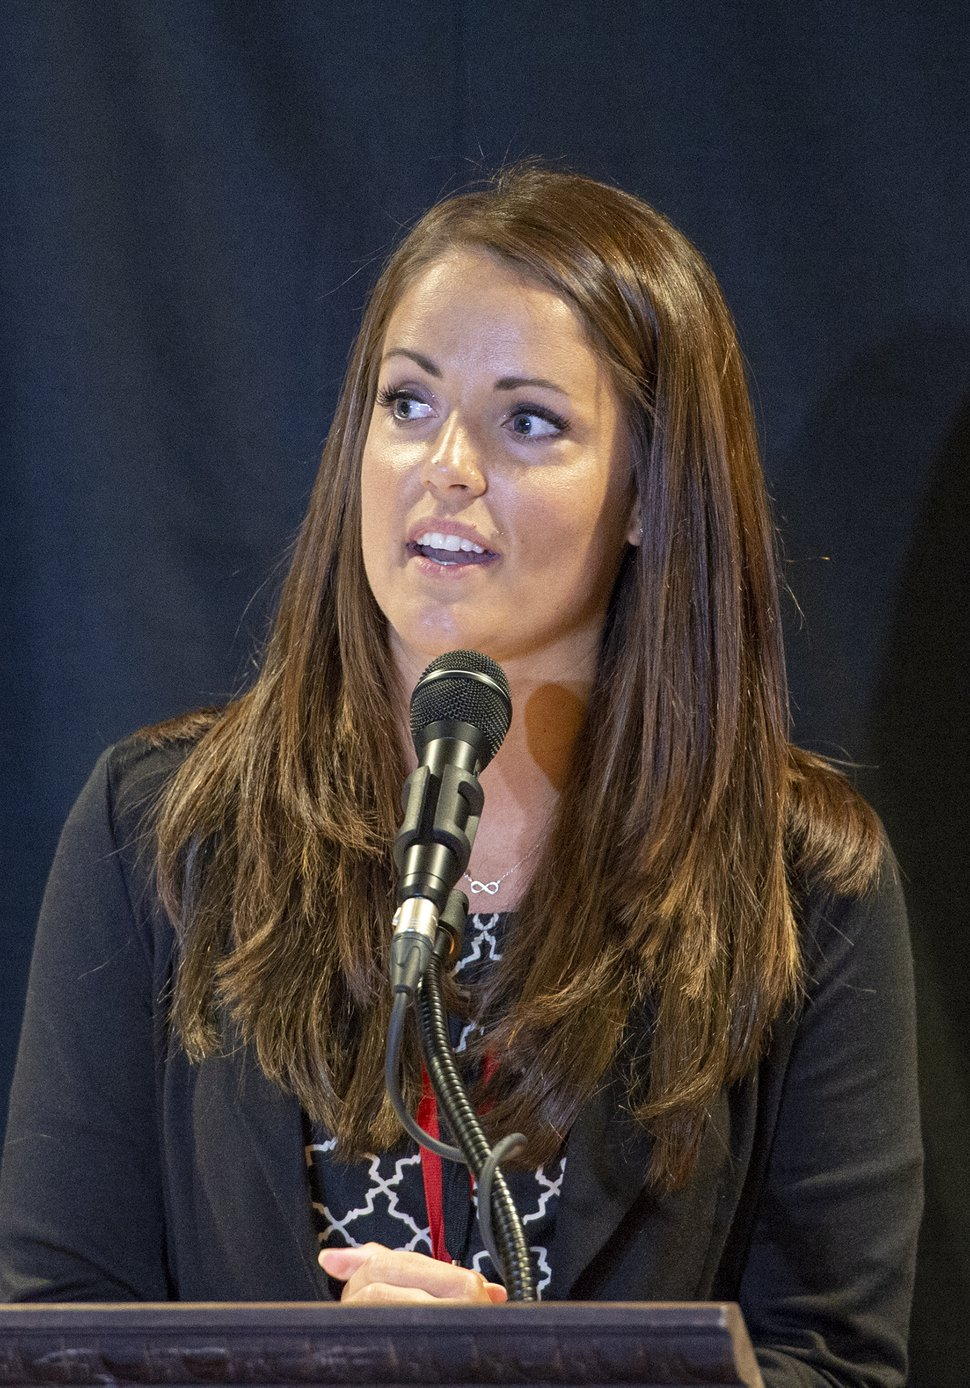 (Leah Hogsten | The Salt Lake Tribune) Kera Birkeland was elected as the new vice chairwoman of the Utah Republican Party, defeating former Chairman James Evans 66-48 in the final round. The Utah Republican Party Central Committee meets Saturday, May 19, 2018, to elect a new party vice chairman and debate several potential bylaw changes.